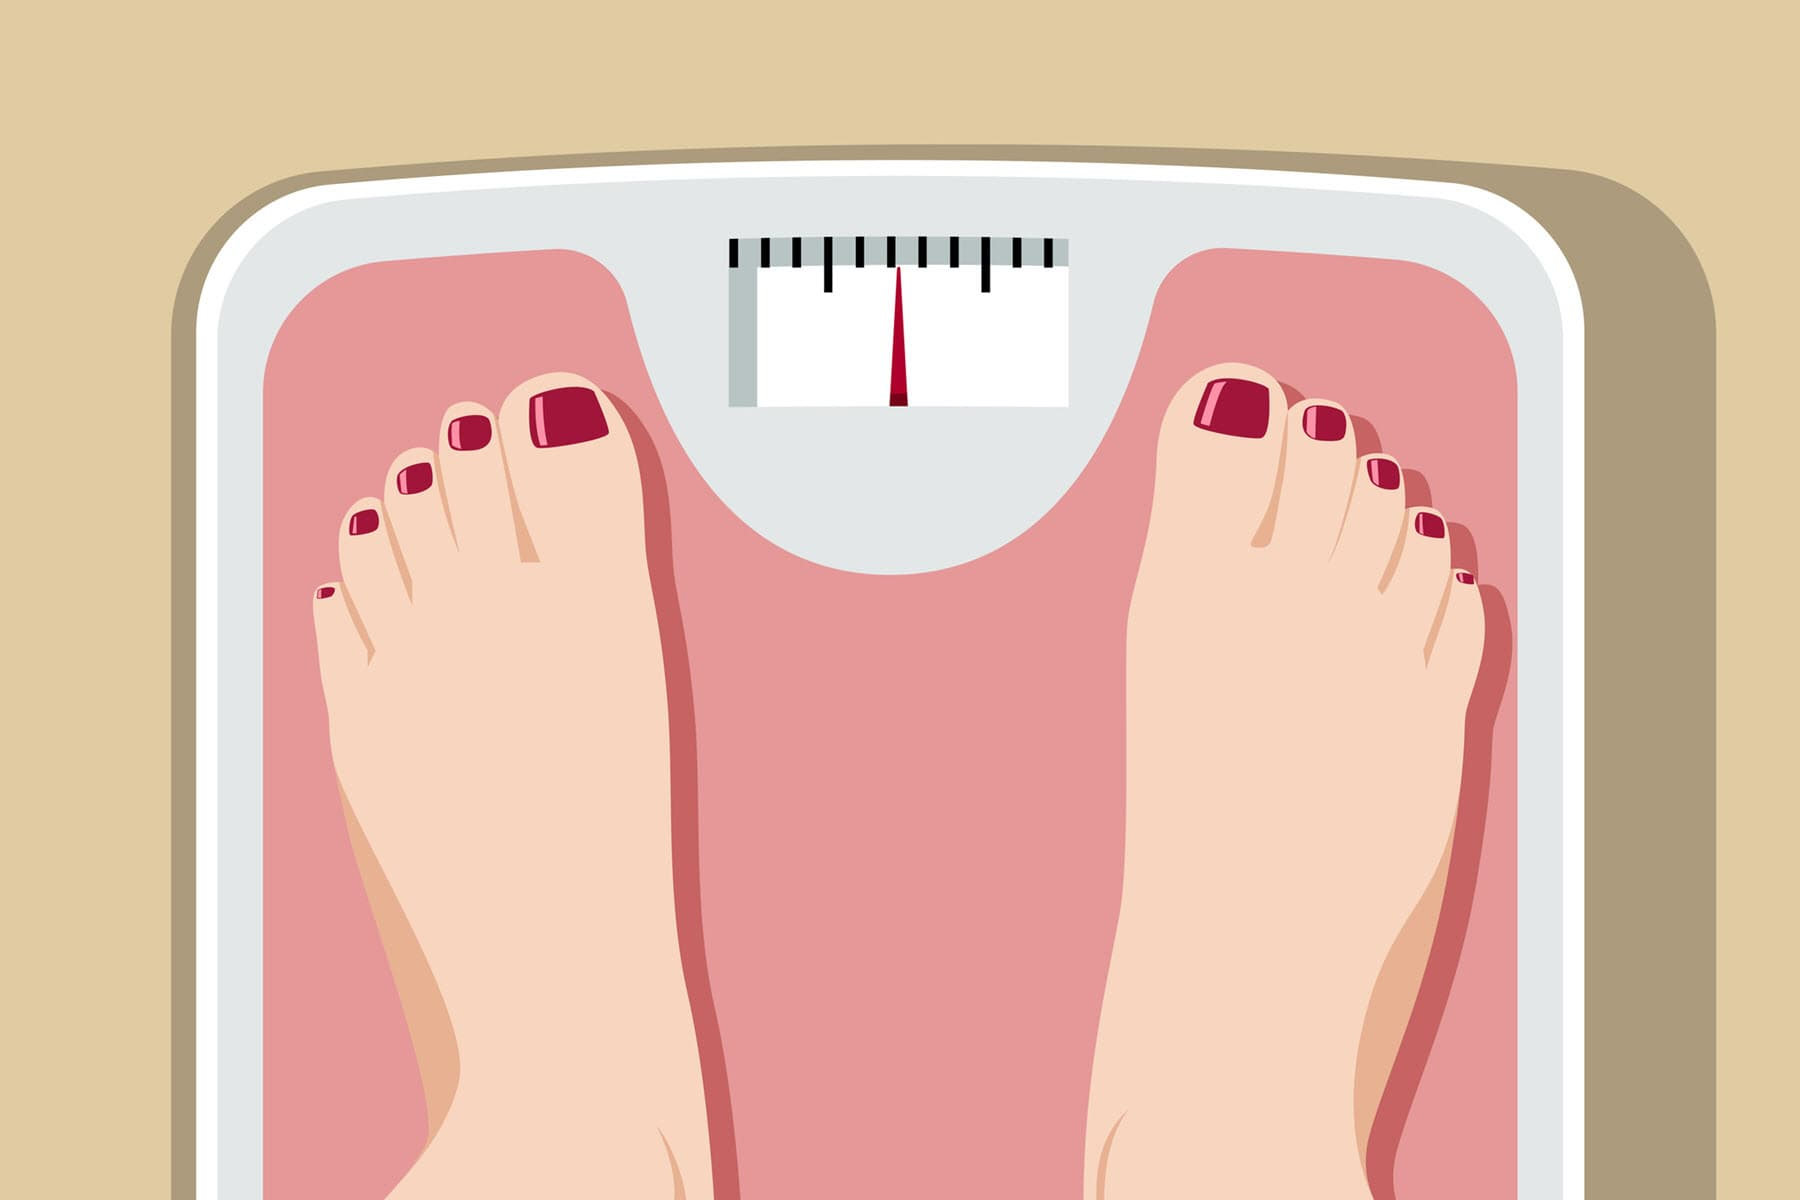 In 16 States, 35% or More Residents Now Obese thumbnail